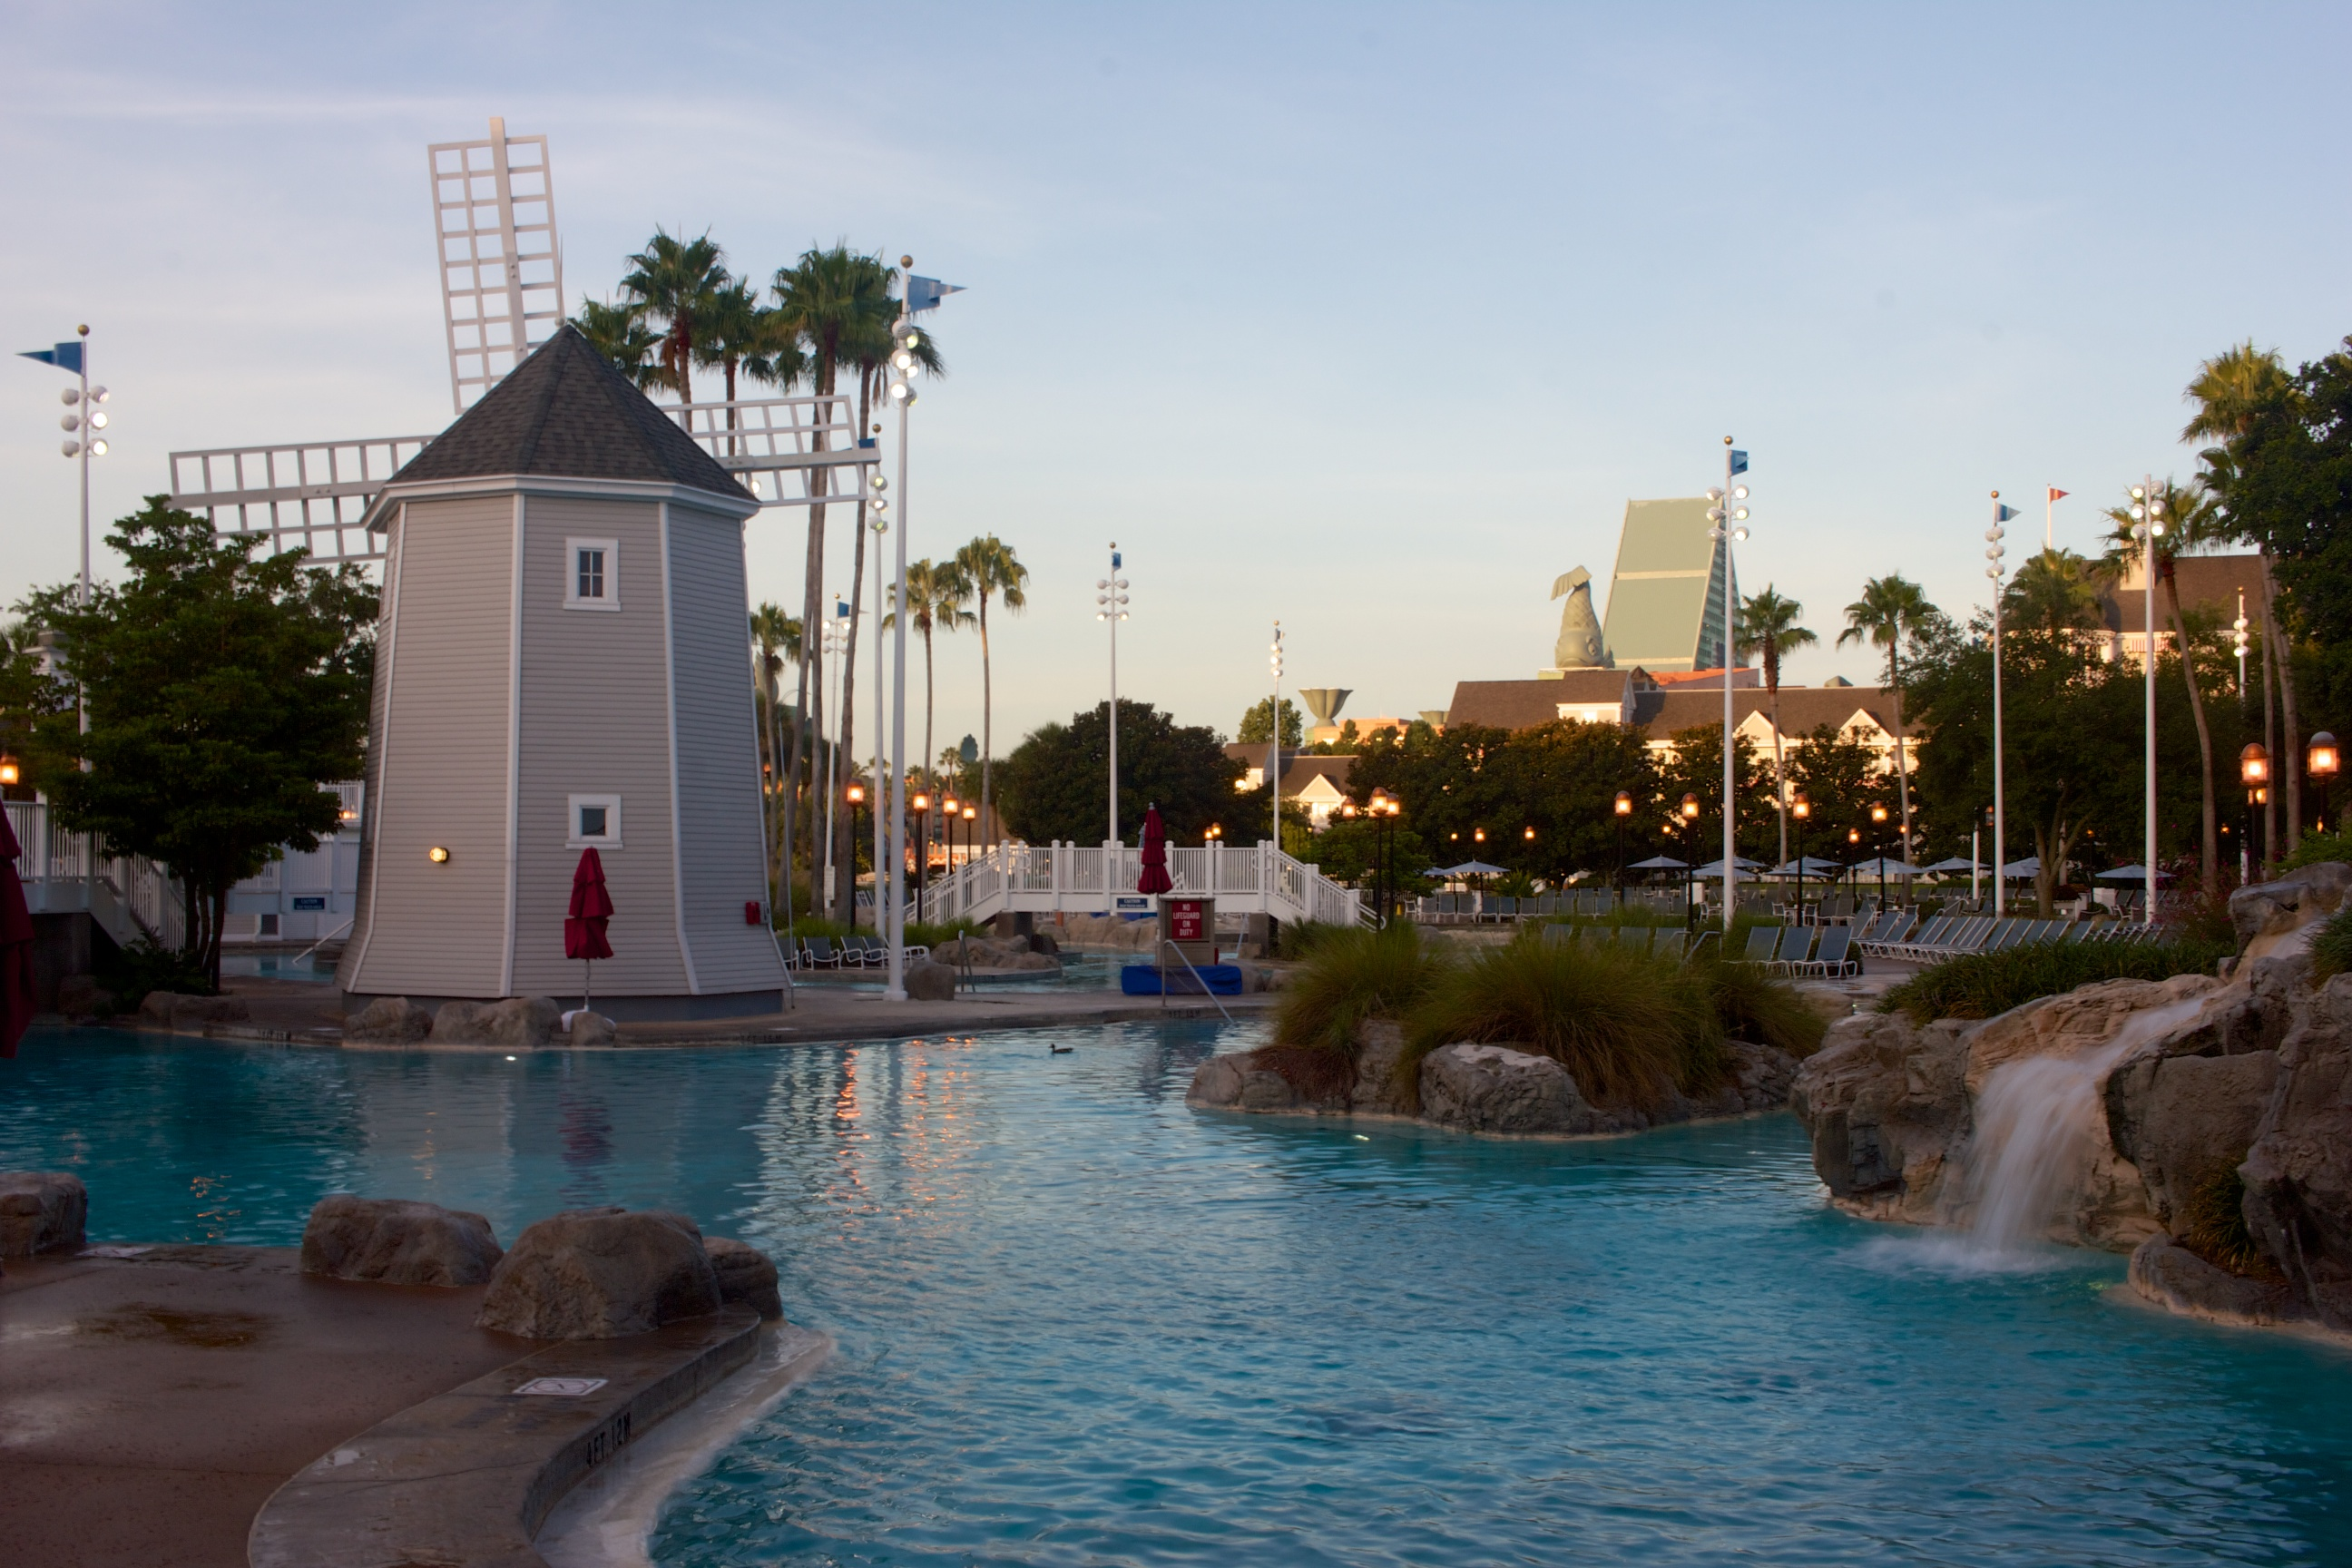 Frequently Asked Questions About Disney World Pools